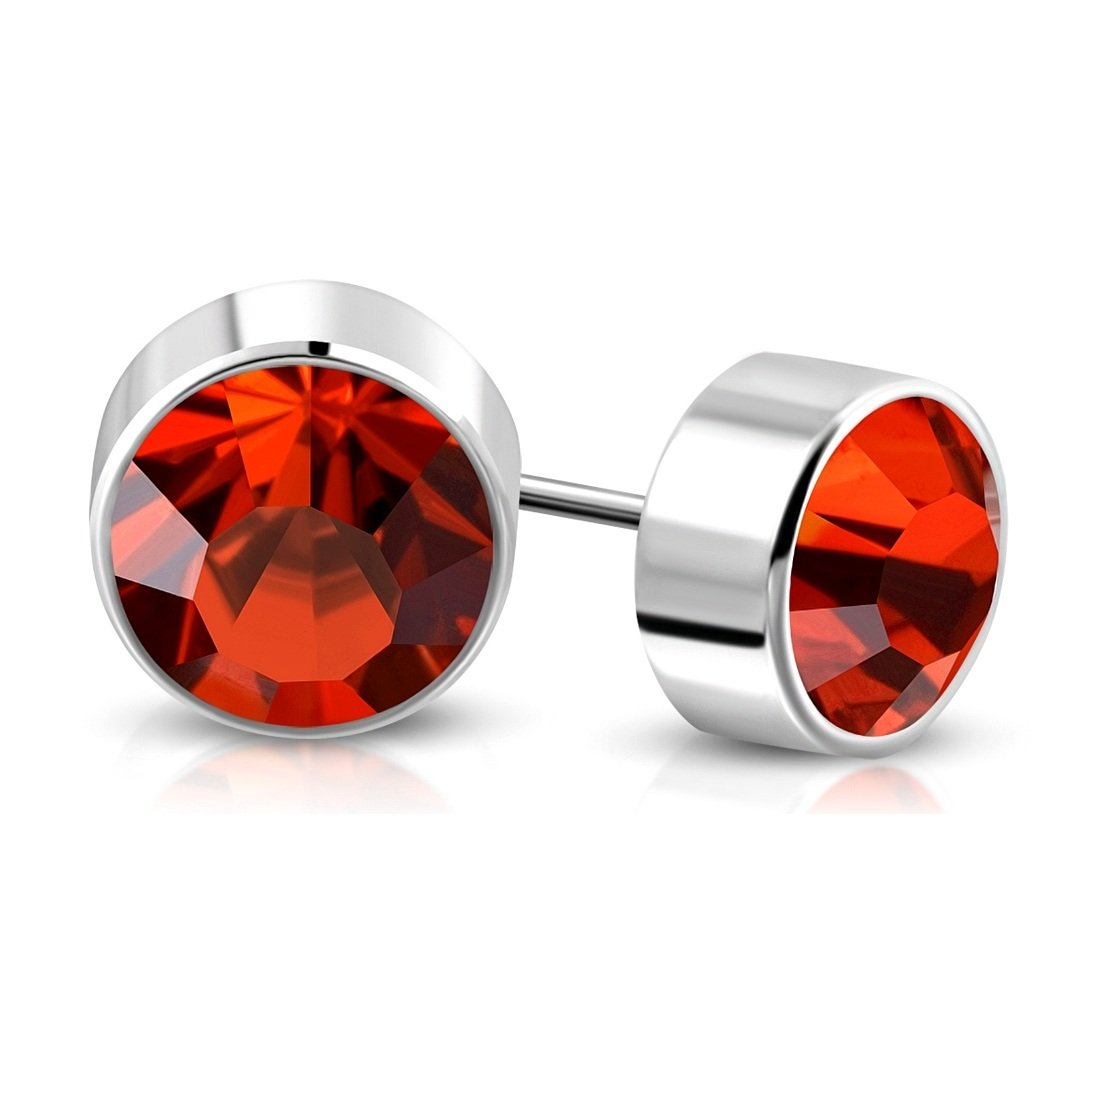 Stainless Steel Bezel-Set Round Circle Stud Earrings with Fire Opal Orange CZ pair